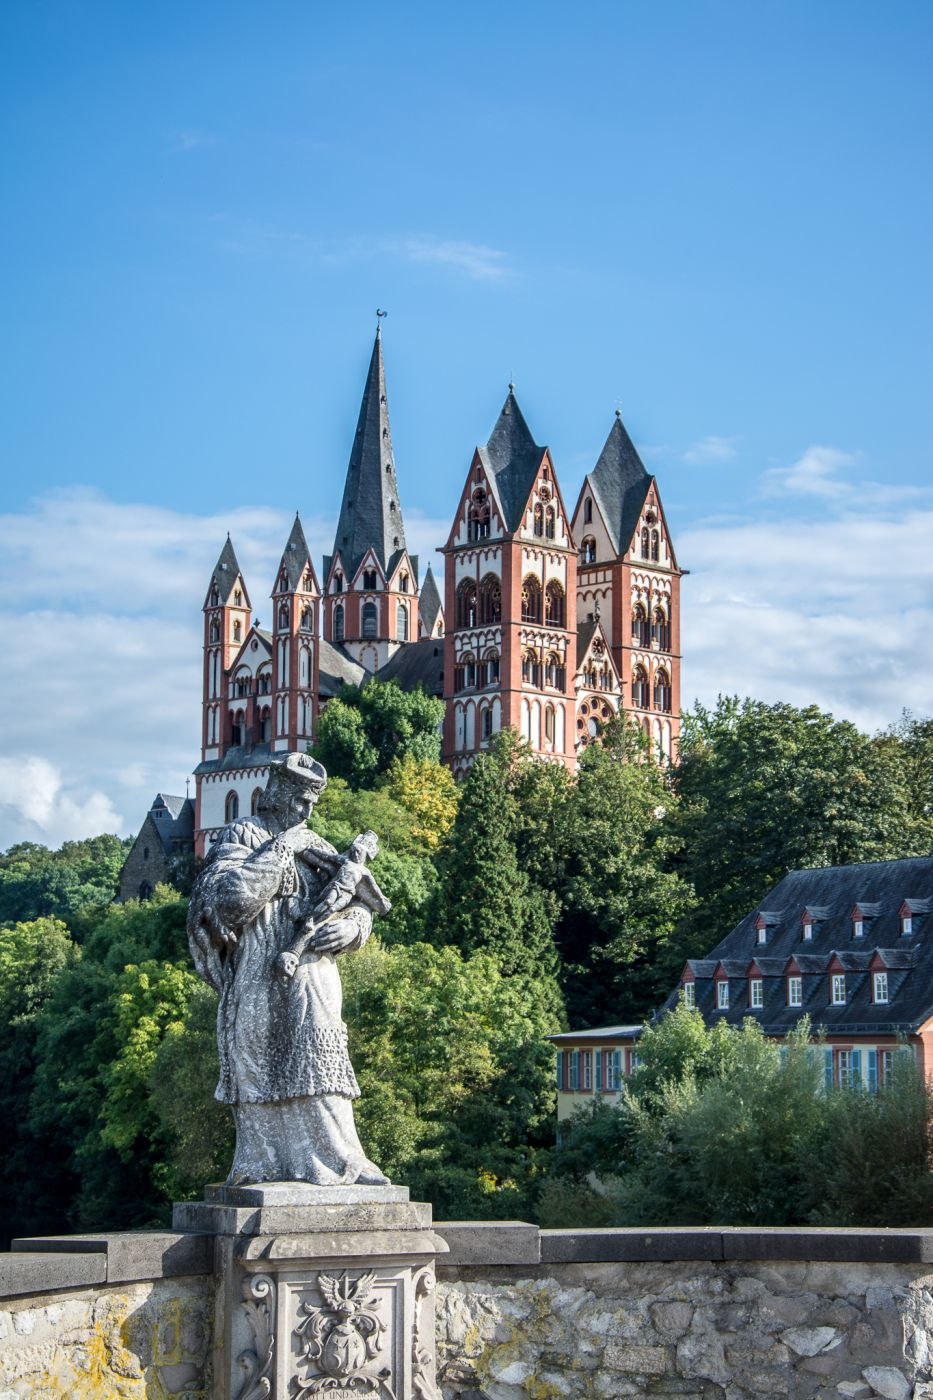 St. Nepomuk & Cathedral of Limburg a. d. Lahn, Germany